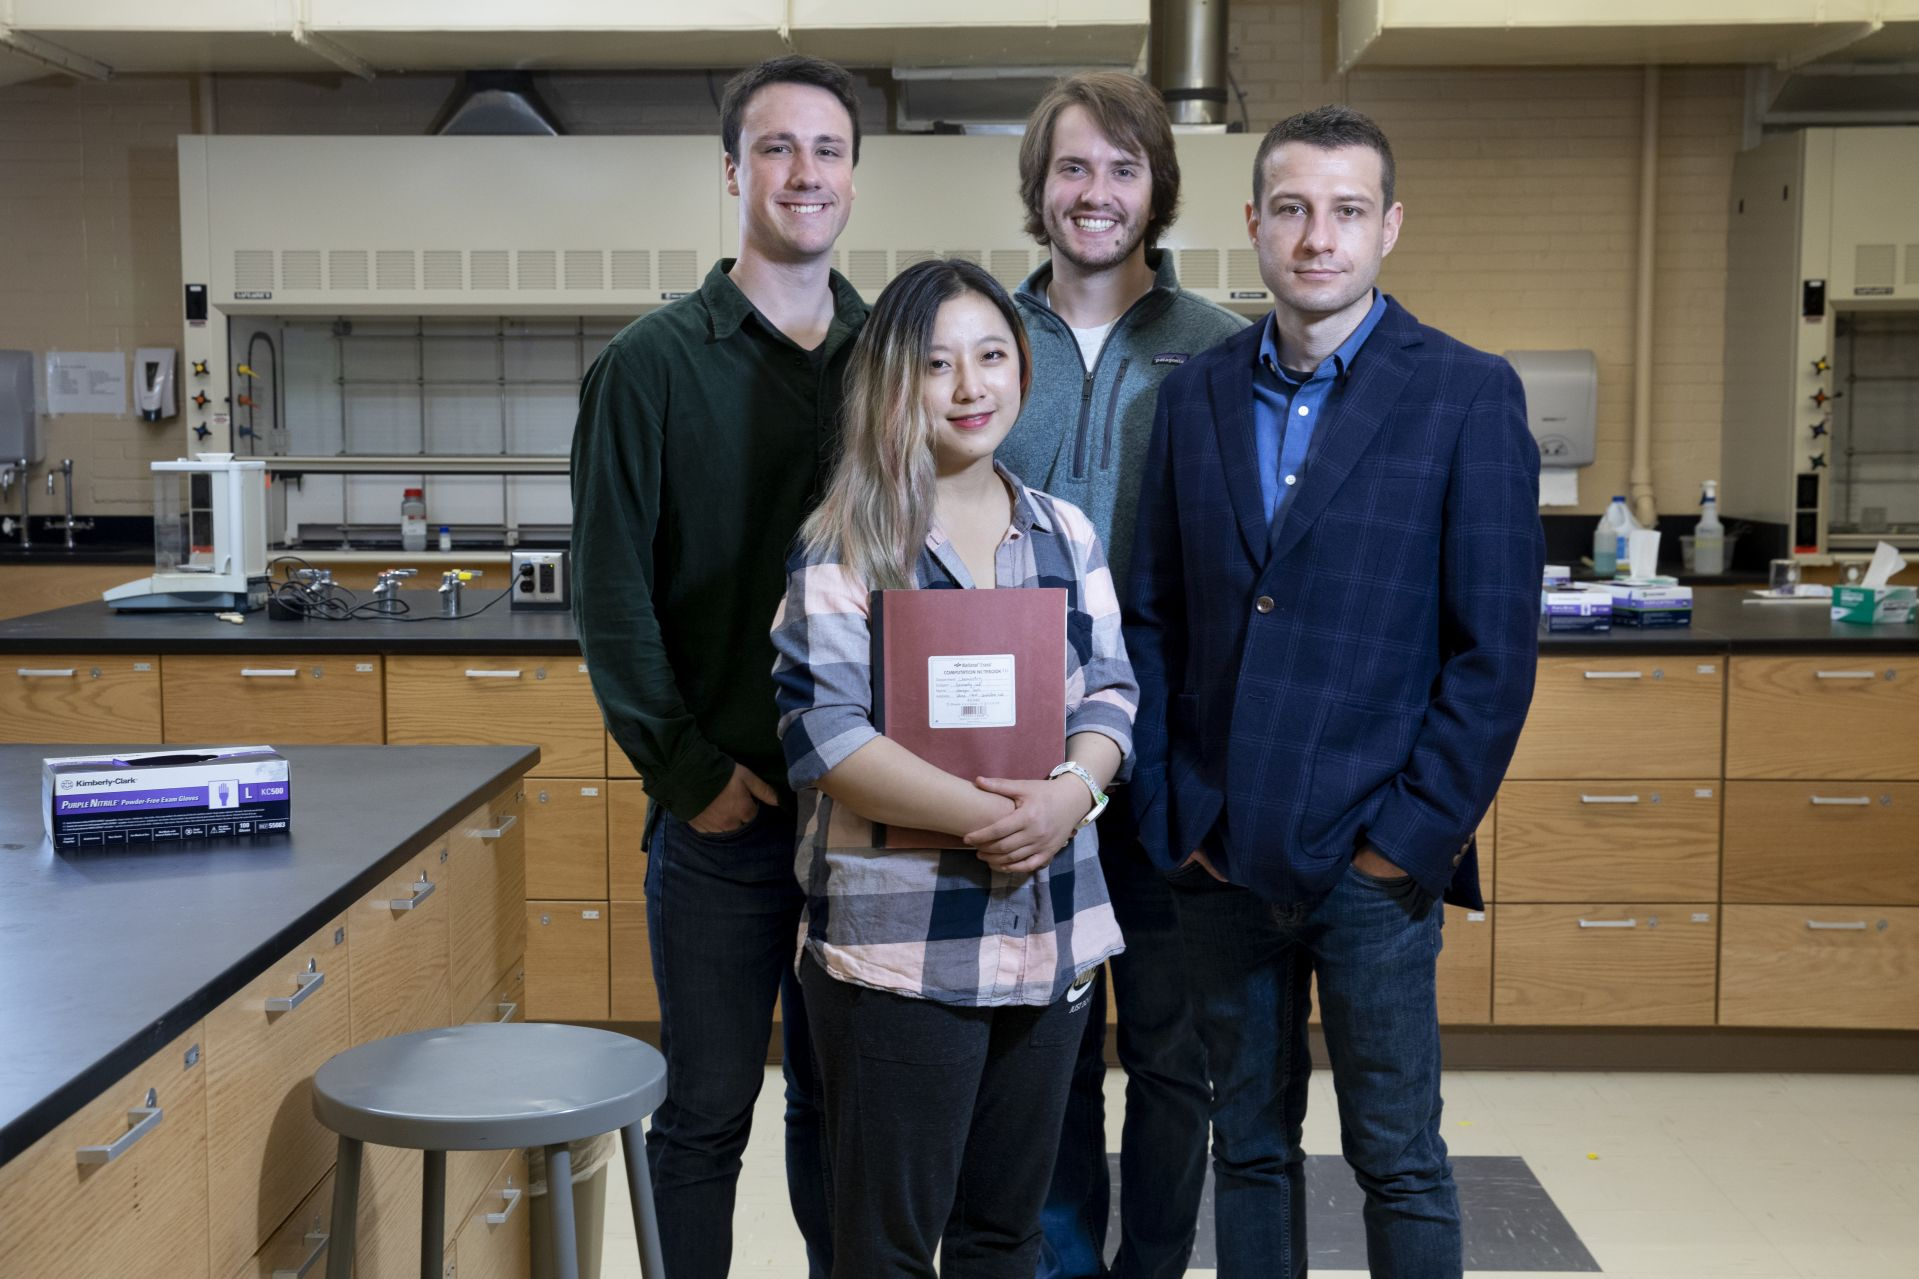 Four of the coauthors of the scholarly article describing the creation of Bobcat339 pose in Dana Chemistry lab: from left, Michael Bennett '19, Haoyu Sun '19, Nathanael Kuzio '19, and Andrew Kennedy. (Phyllis Graber Jensen/Bates College)